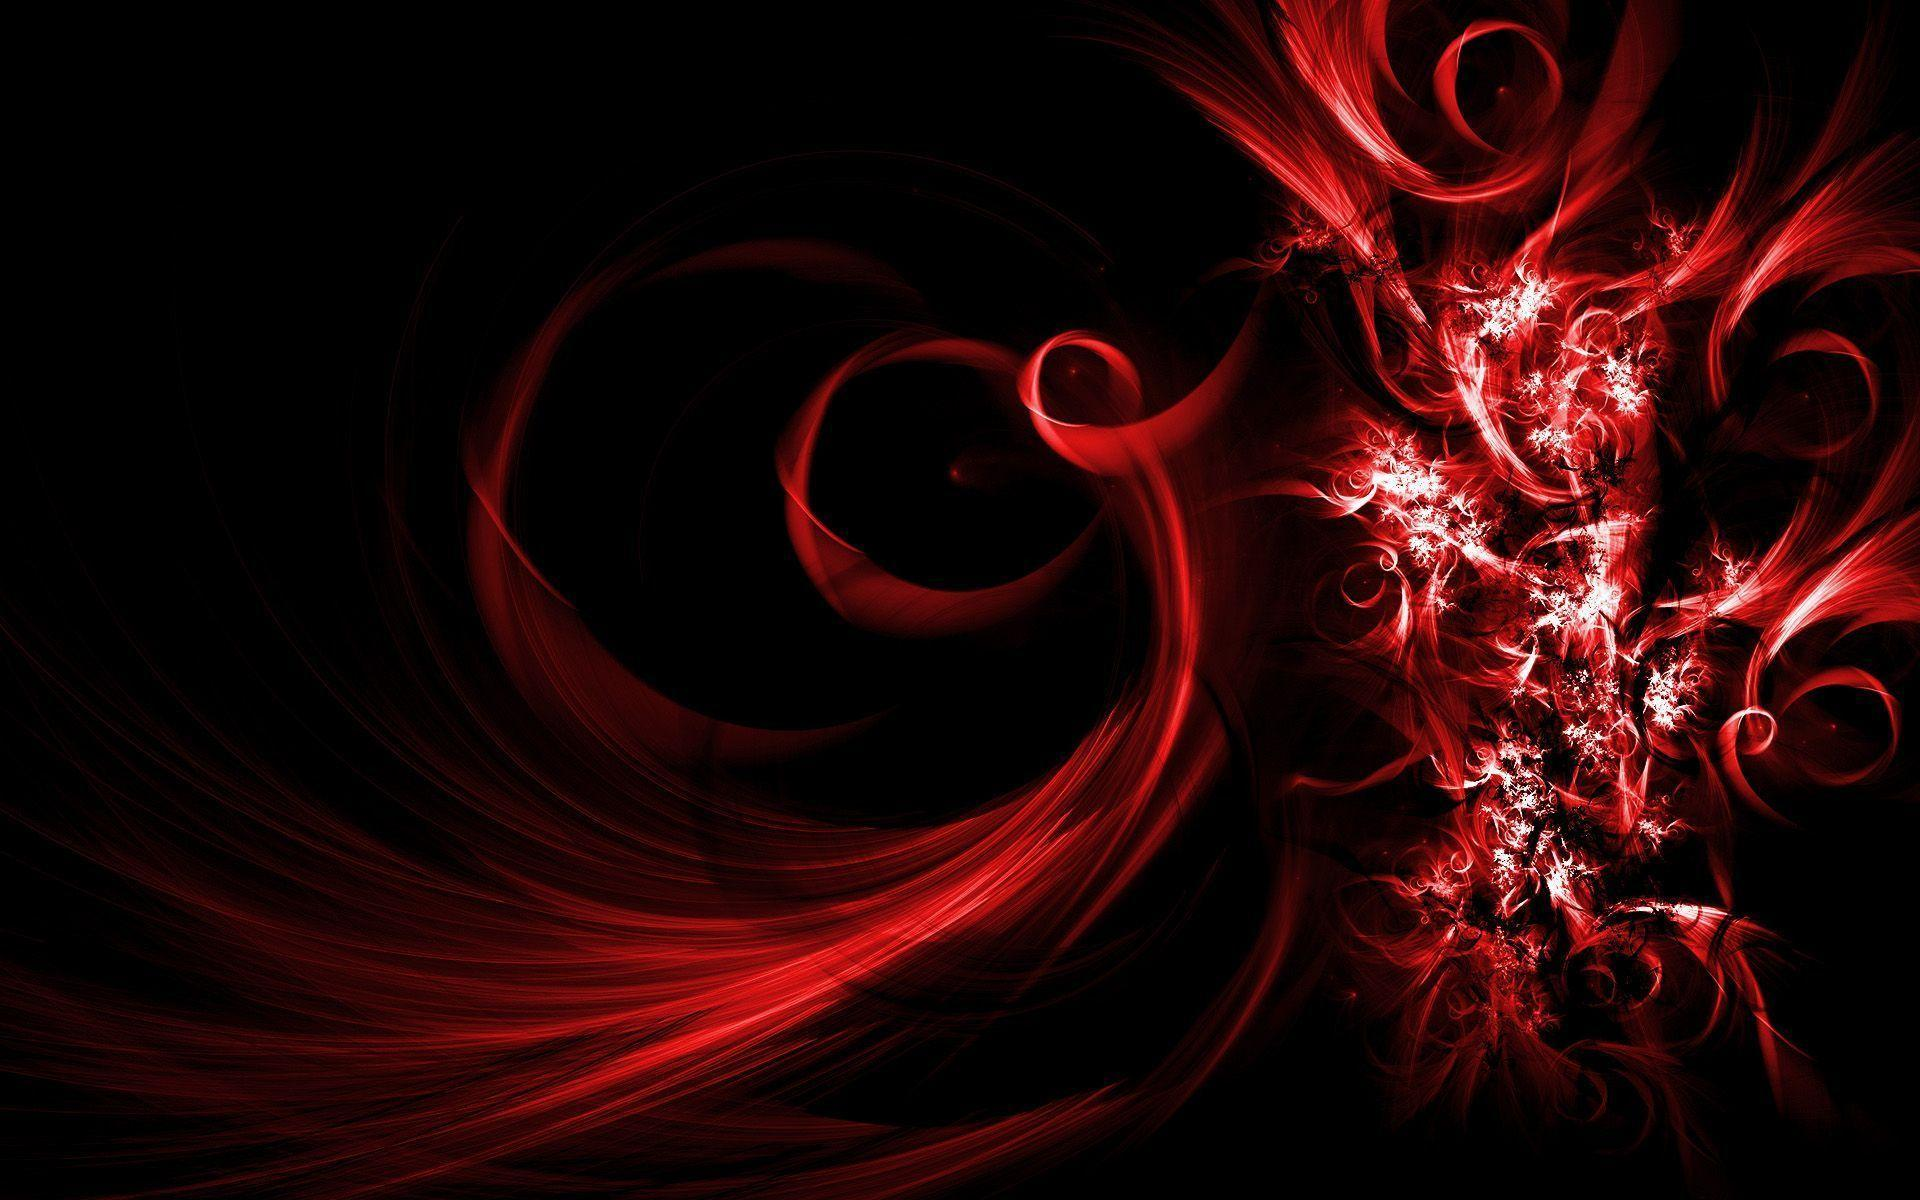 Red Wallpapers 52 Backgrounds